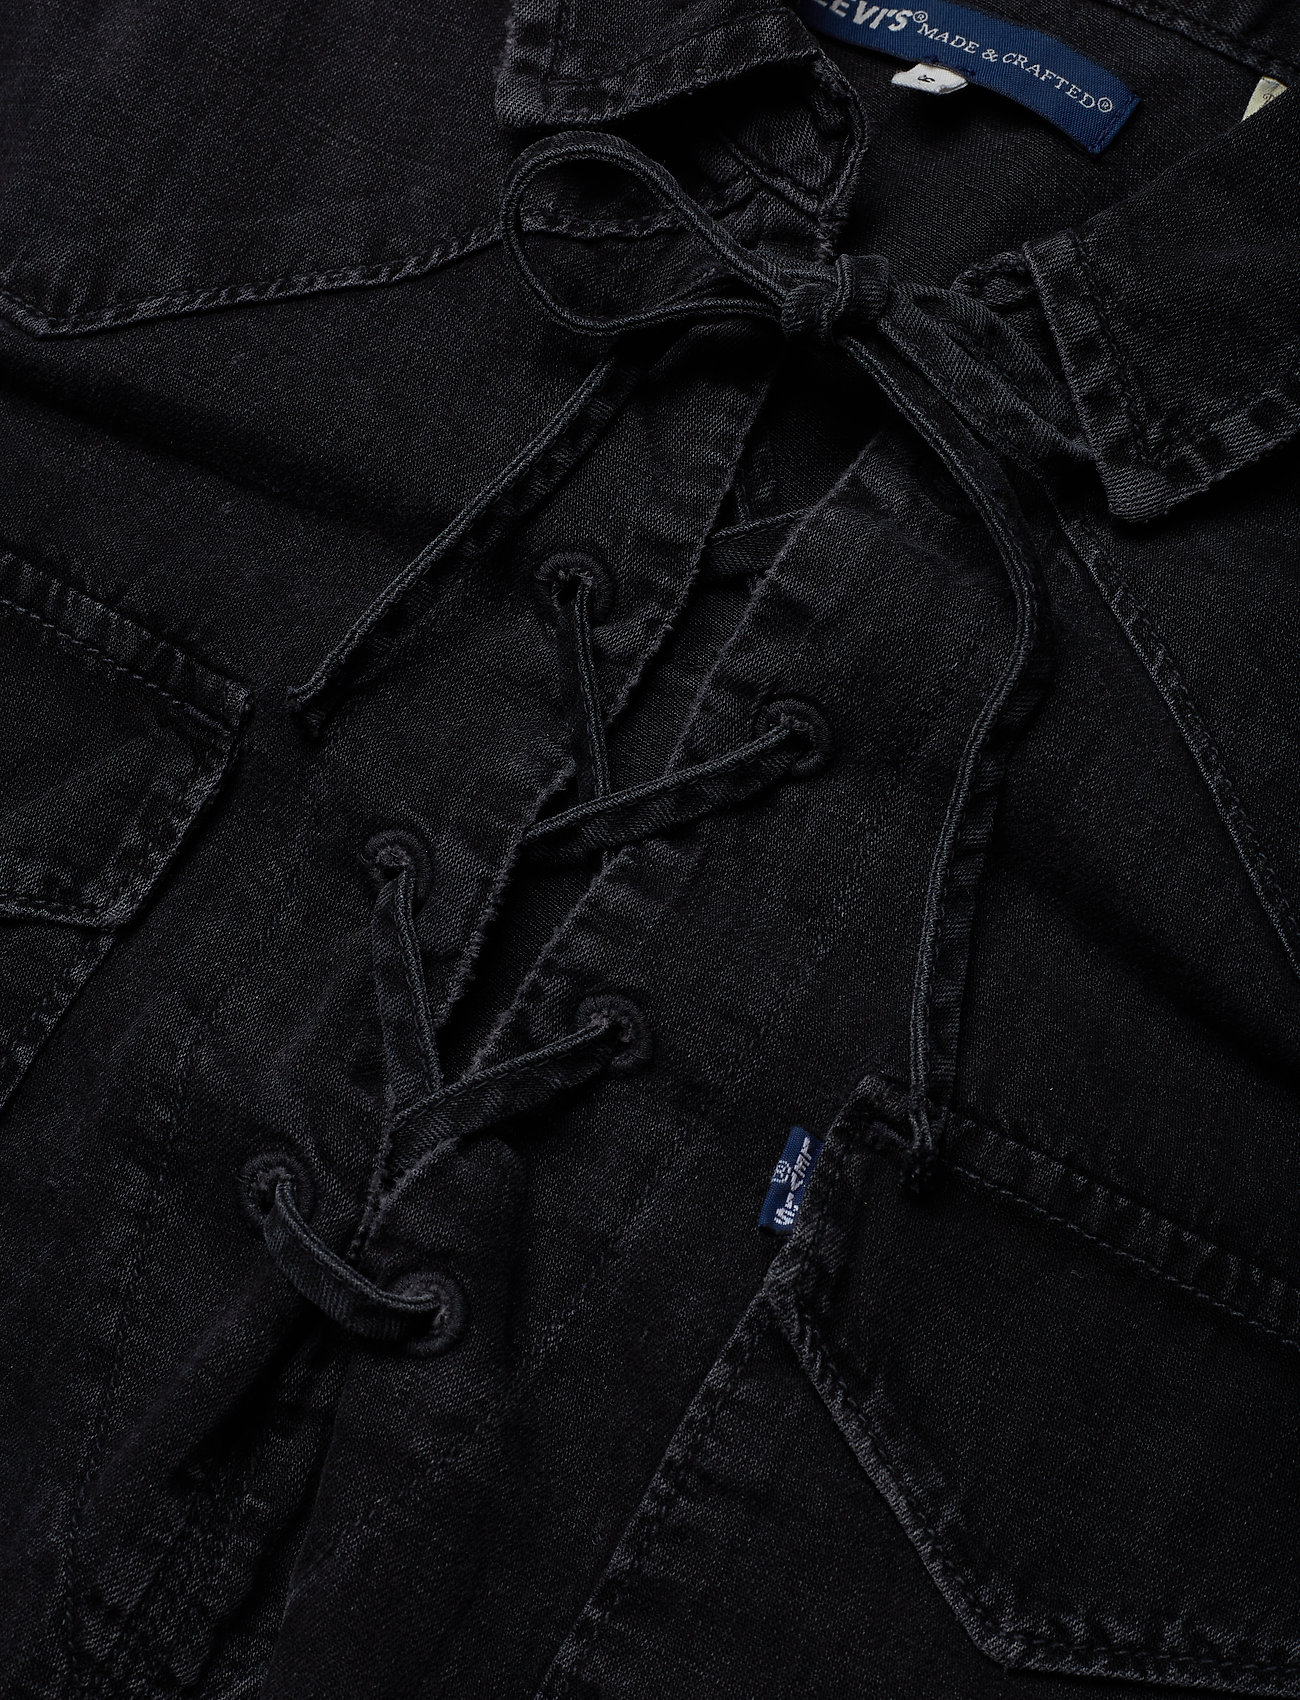 Lace Crafted BlacblacksLevi's Madeamp; Lmc Denim Up Top hdCxrBsQt